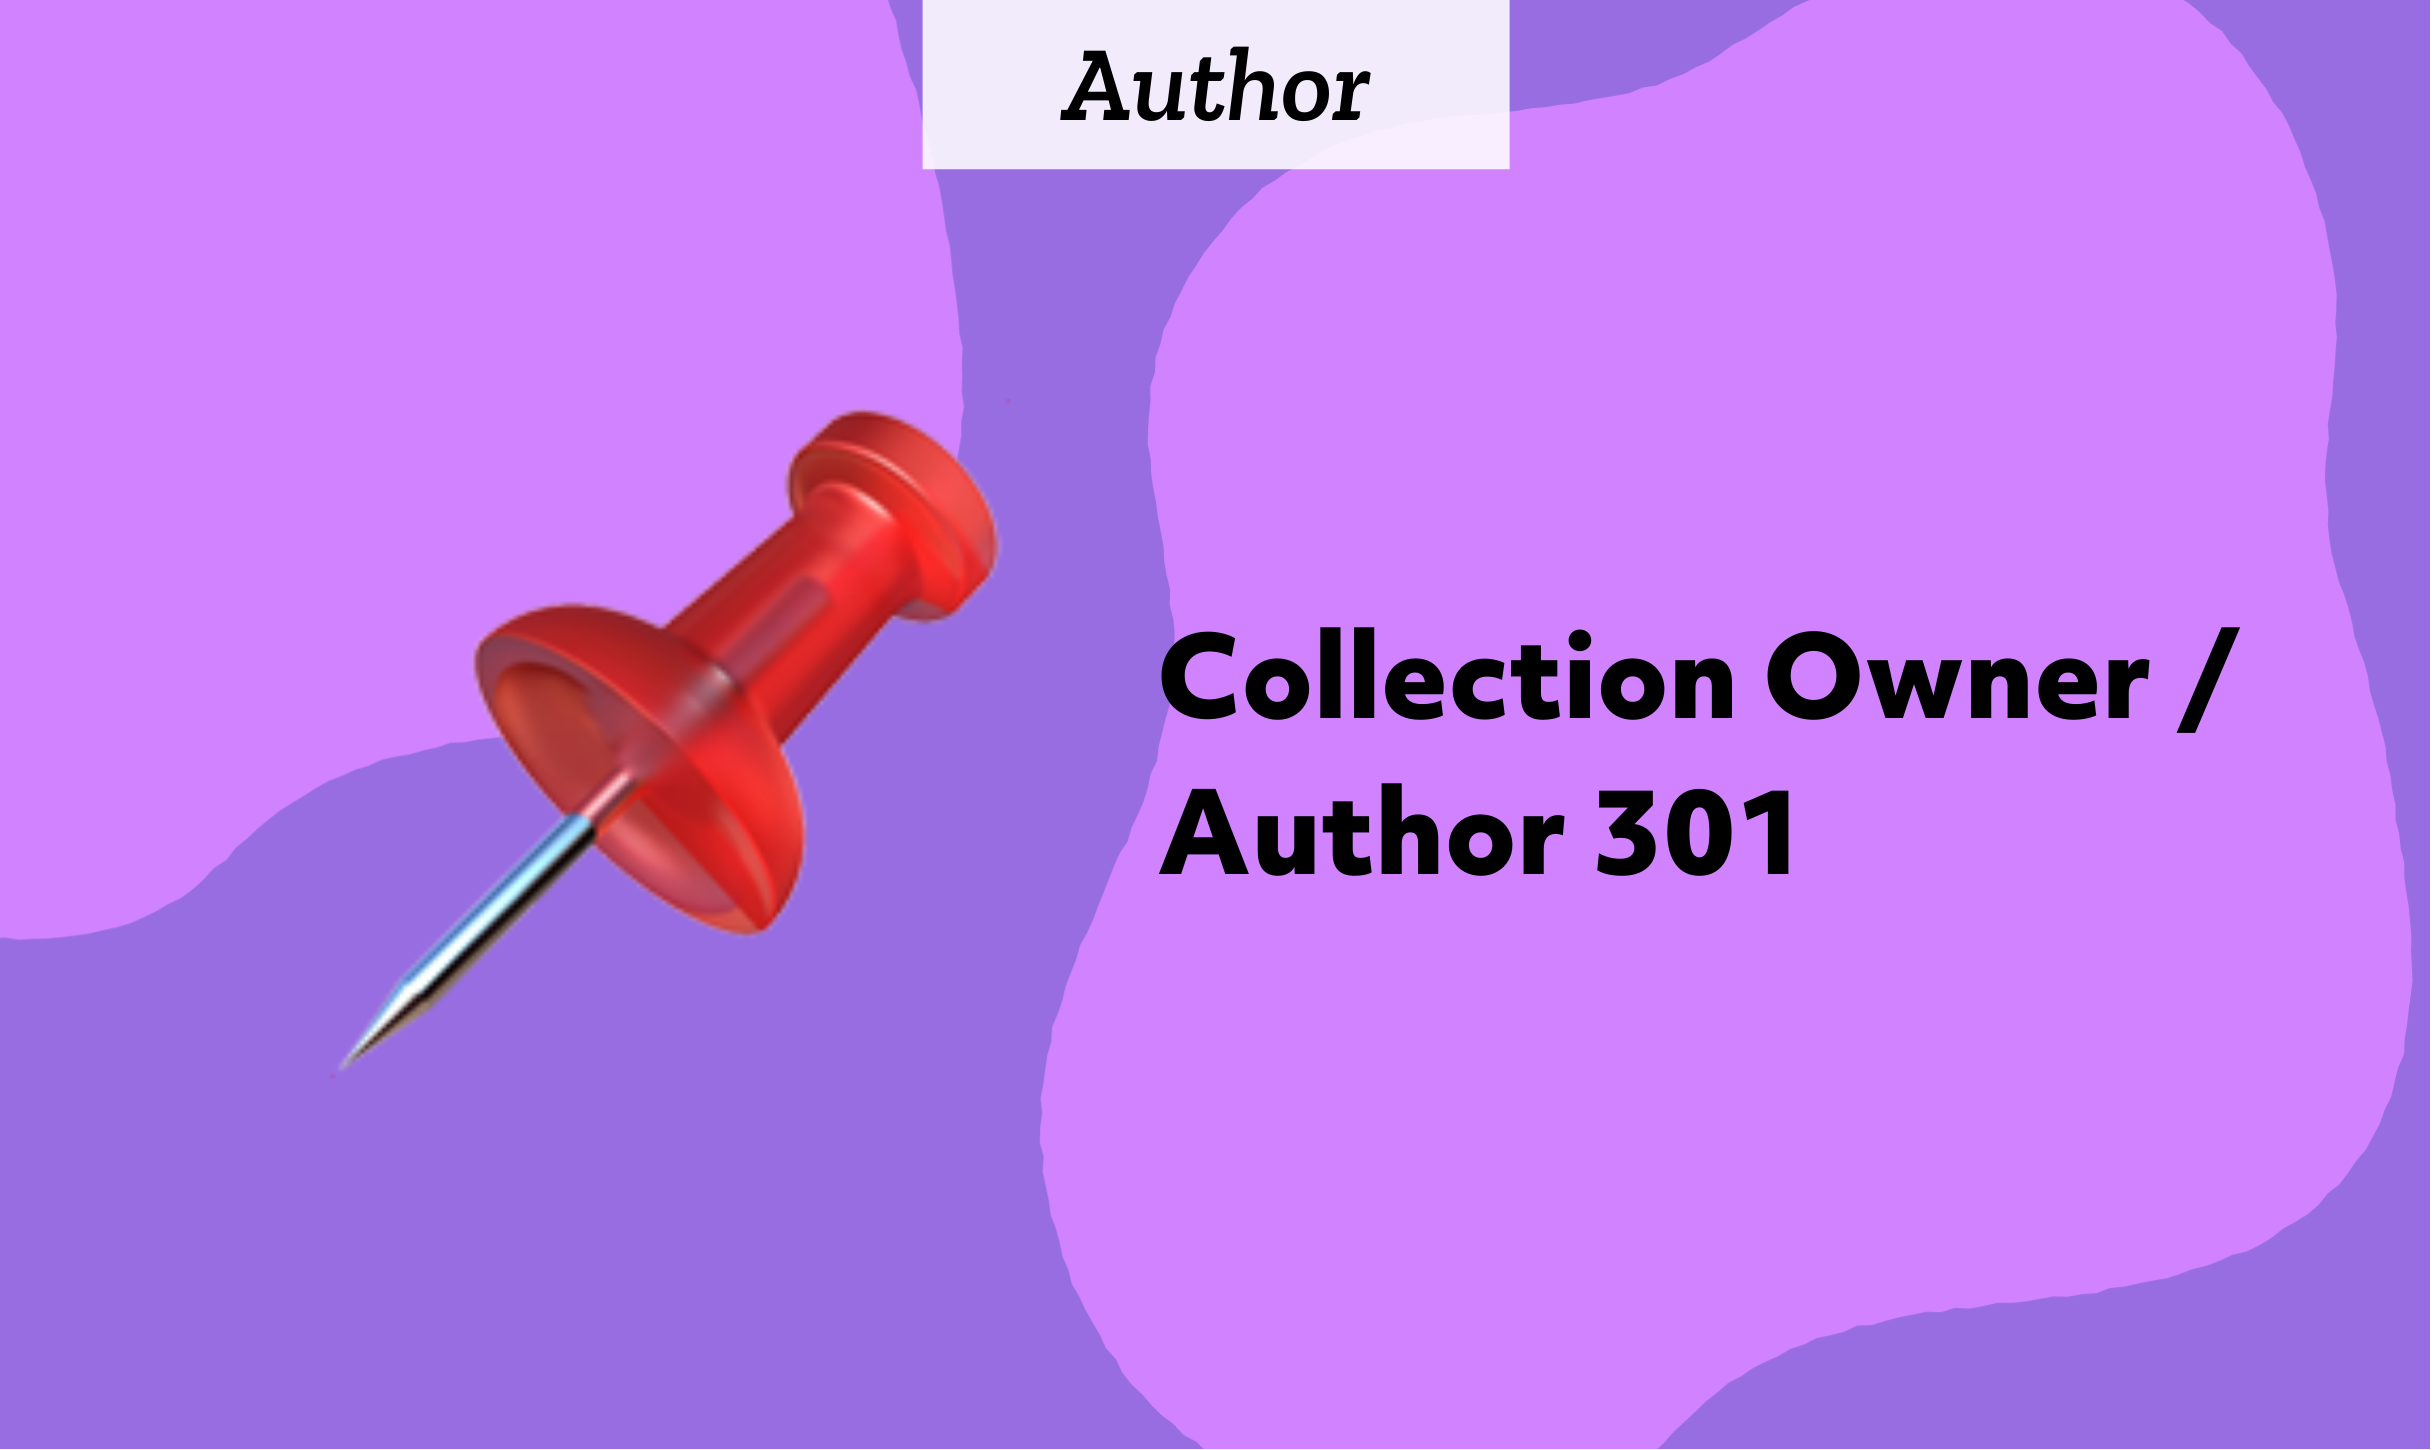 Collection Owner / Author 301